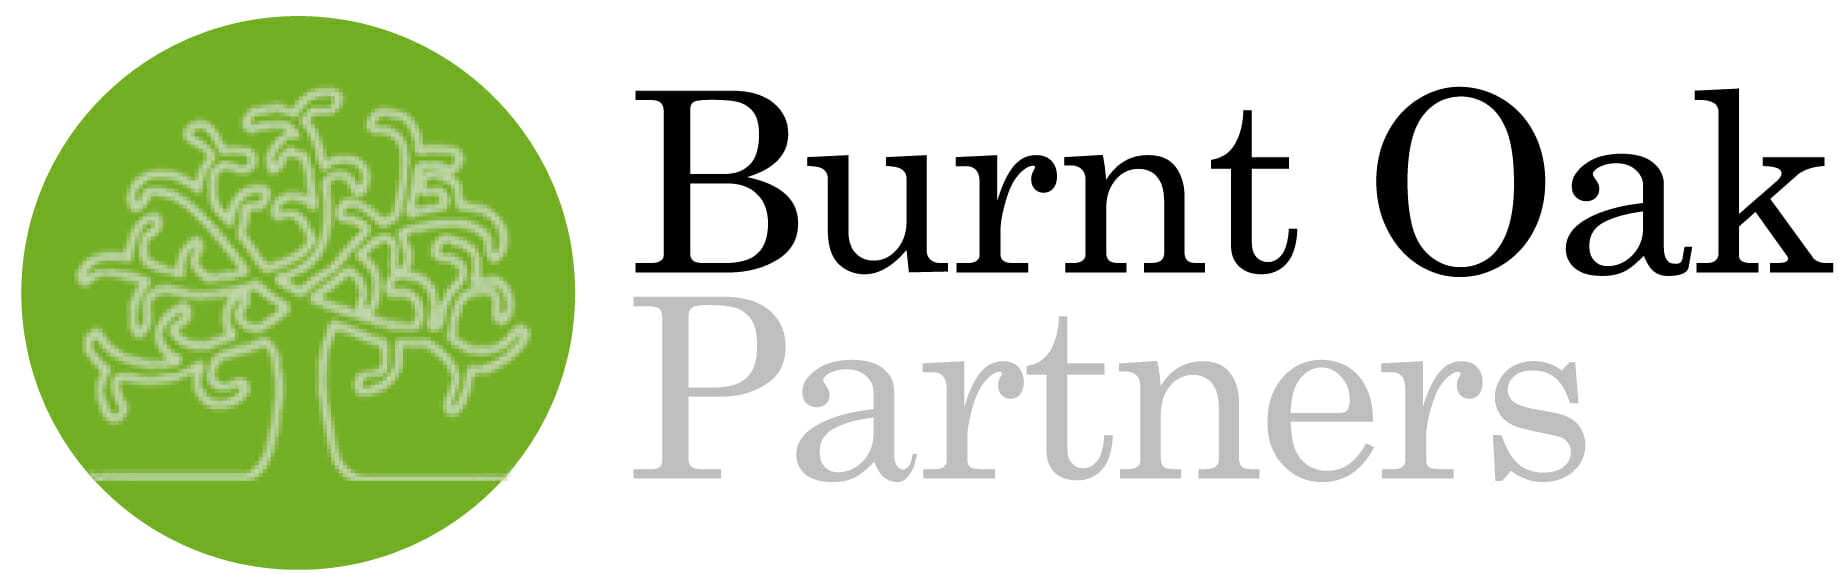 IT Sourcing adviesbureau Burnt Oak Partners van start in de Benelux